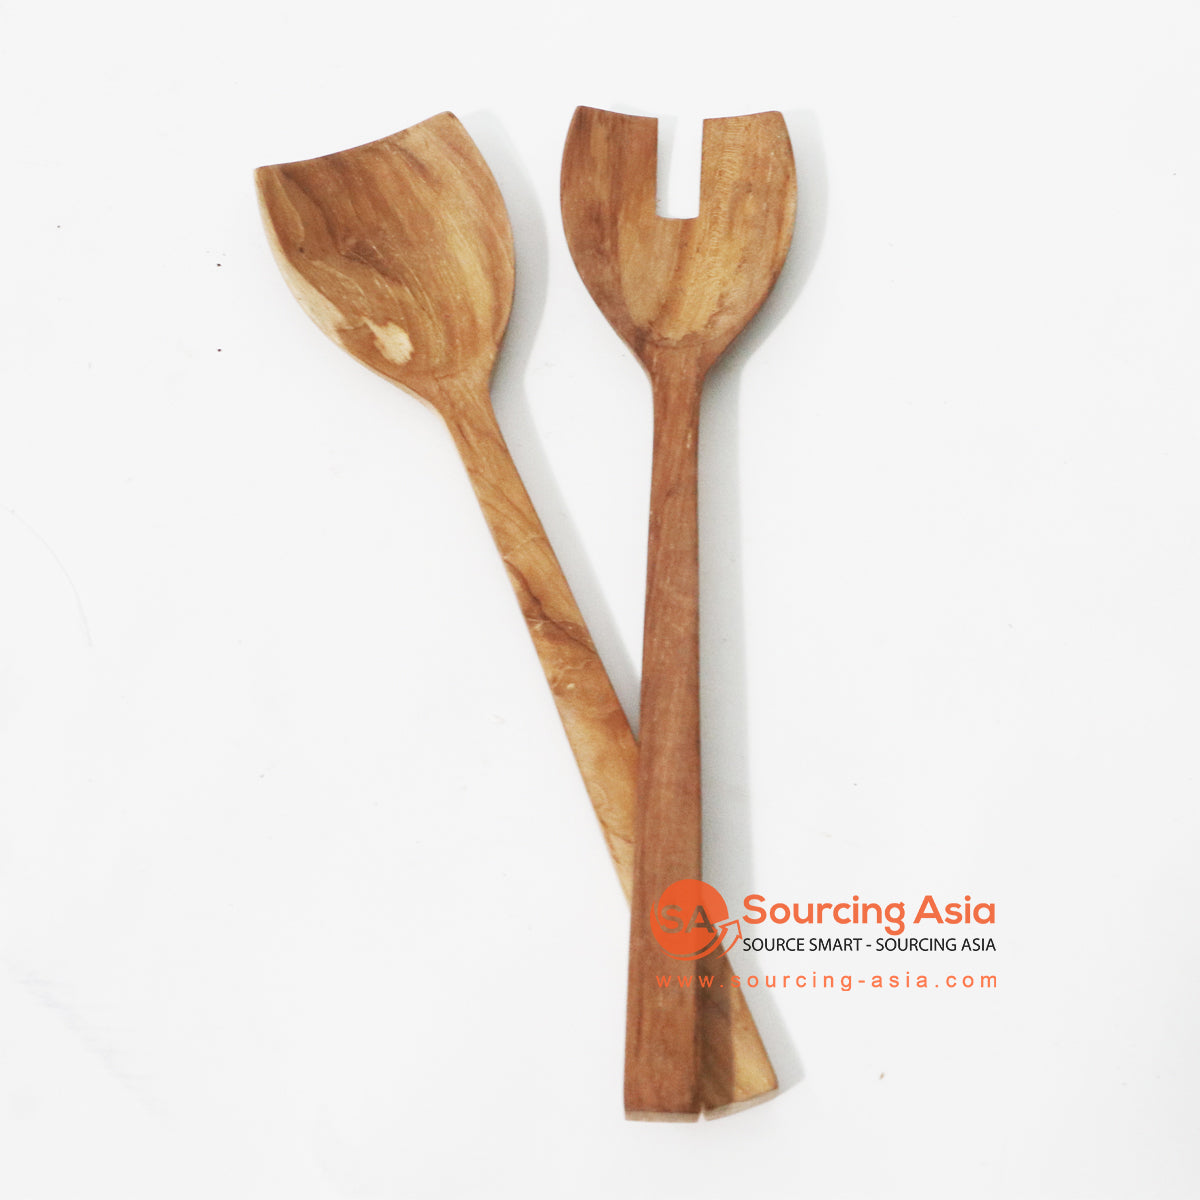 MSB007 TEAK WOOD SALAD SET